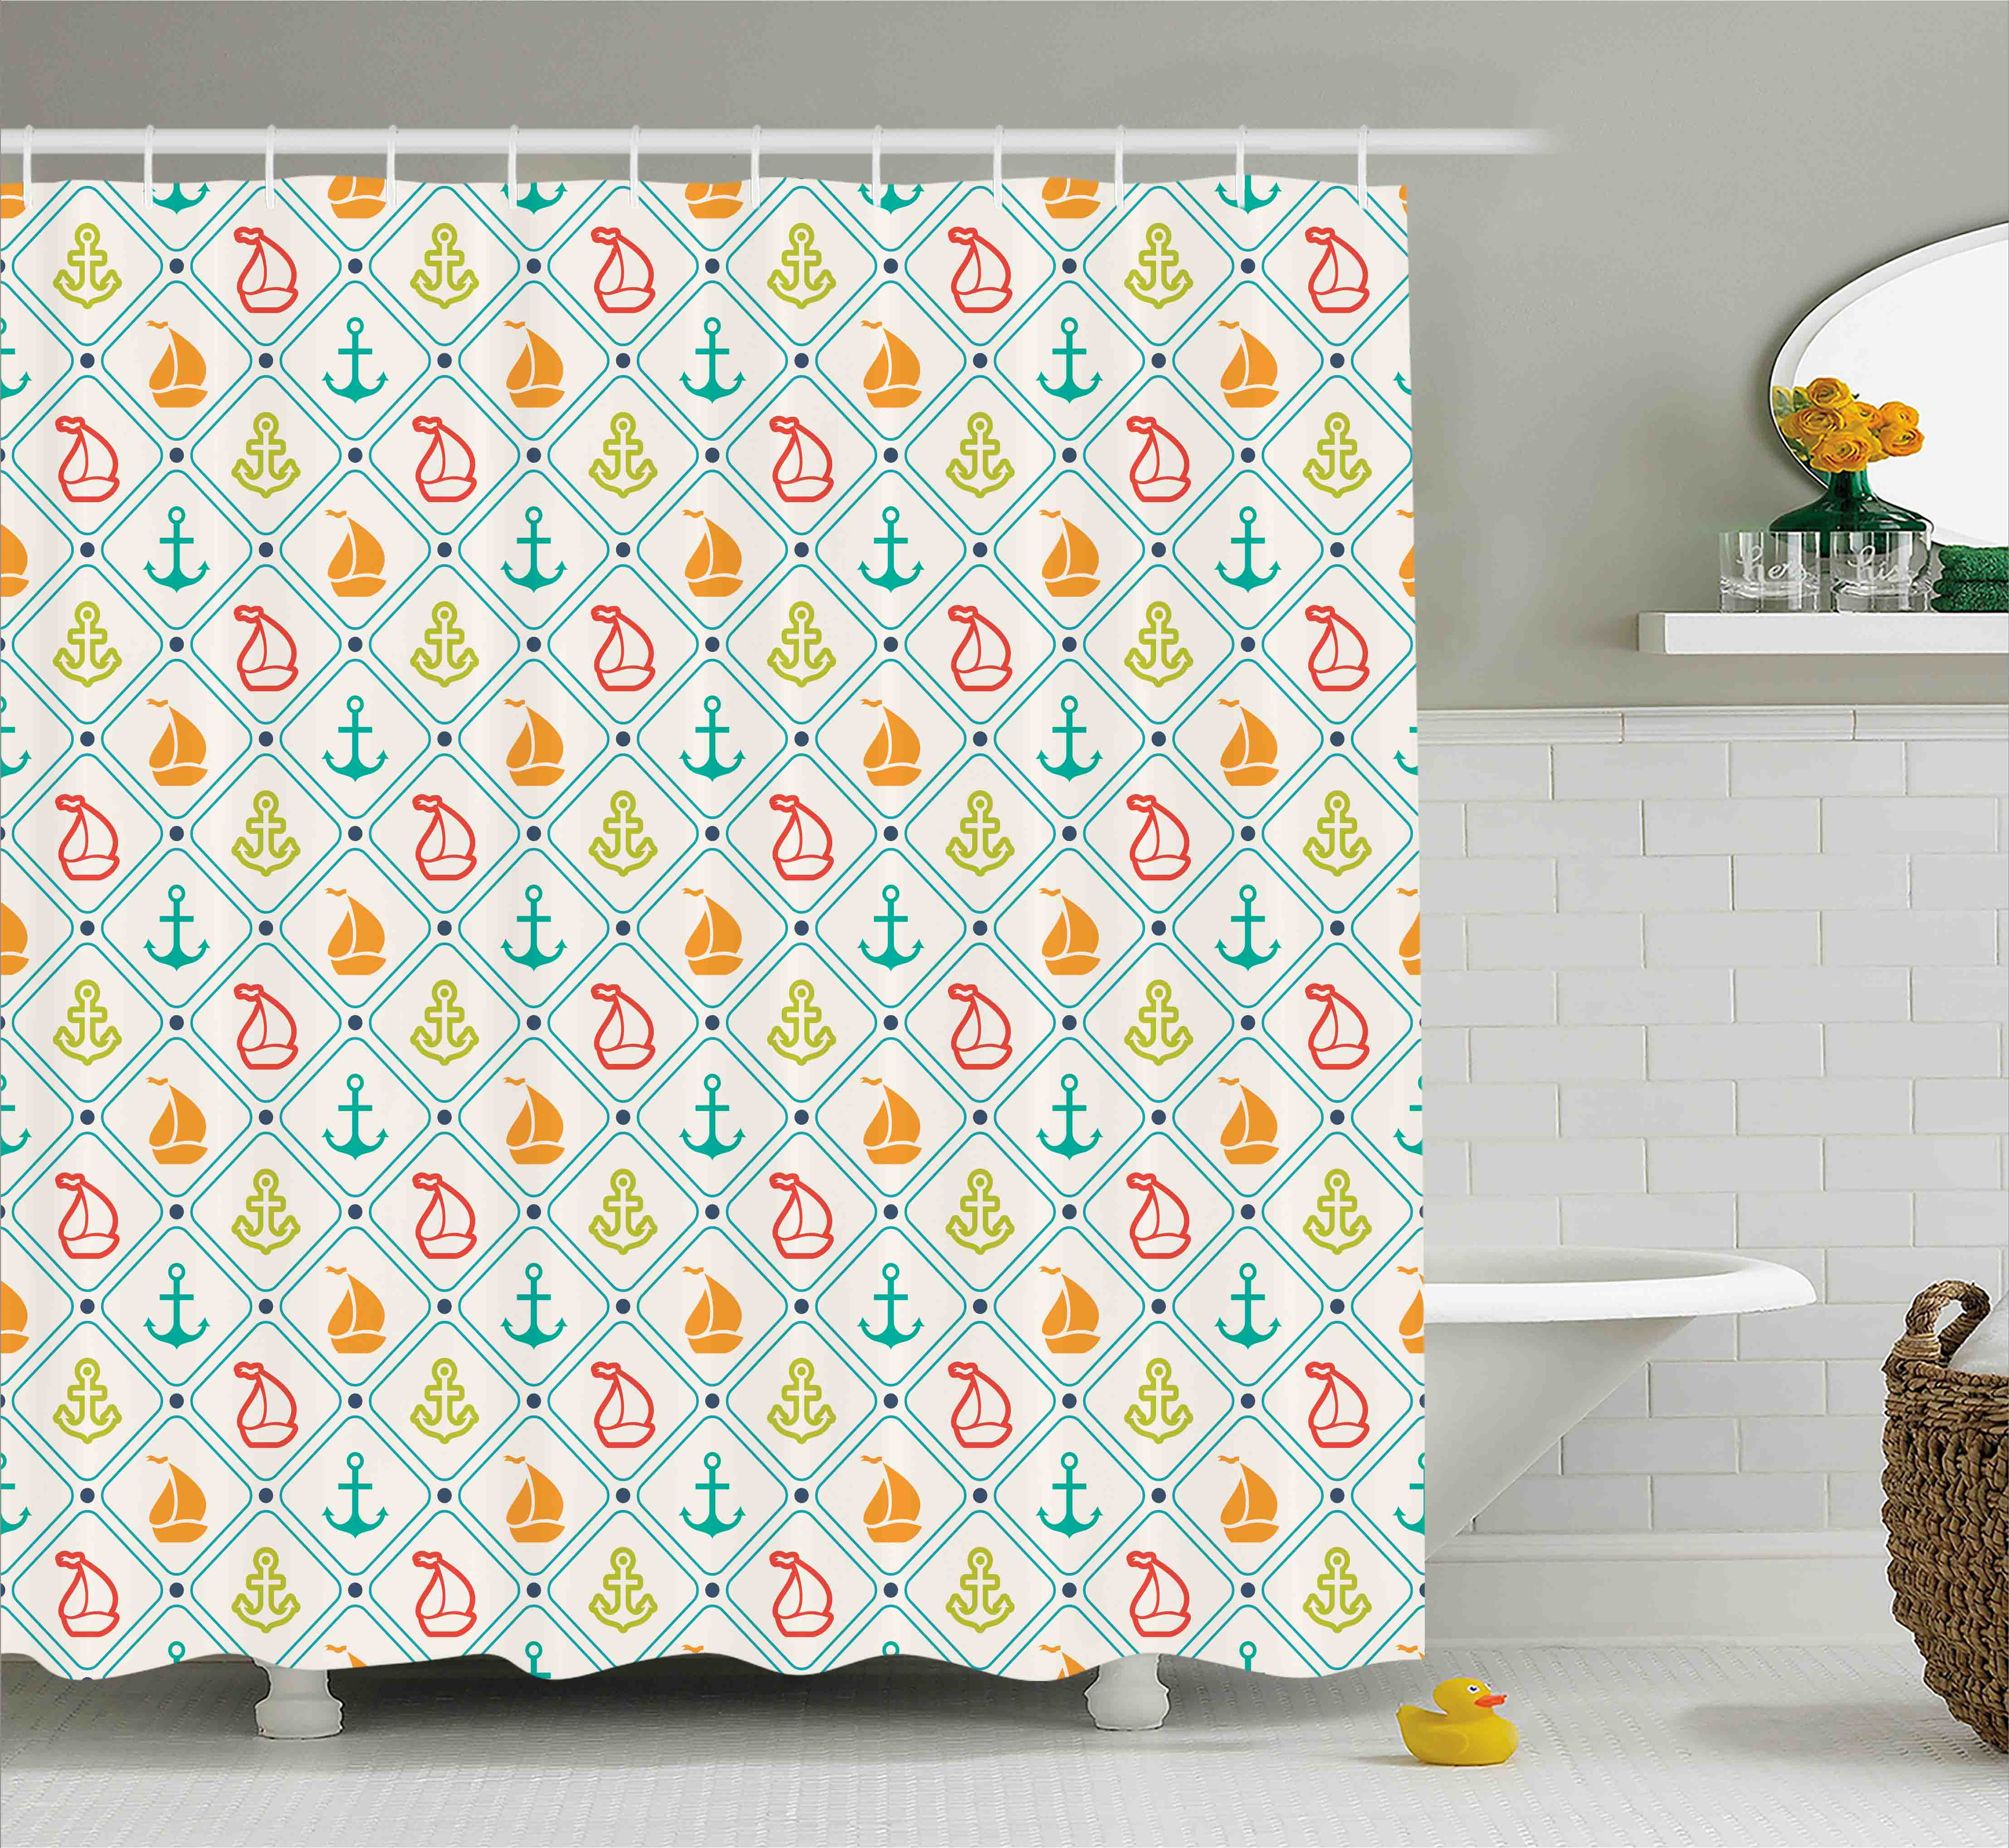 Nautical Decor Shower Curtain, Marine Life Sailboat Yacht Anchor Pattern  Offshore Coastal Trip Retro Sea